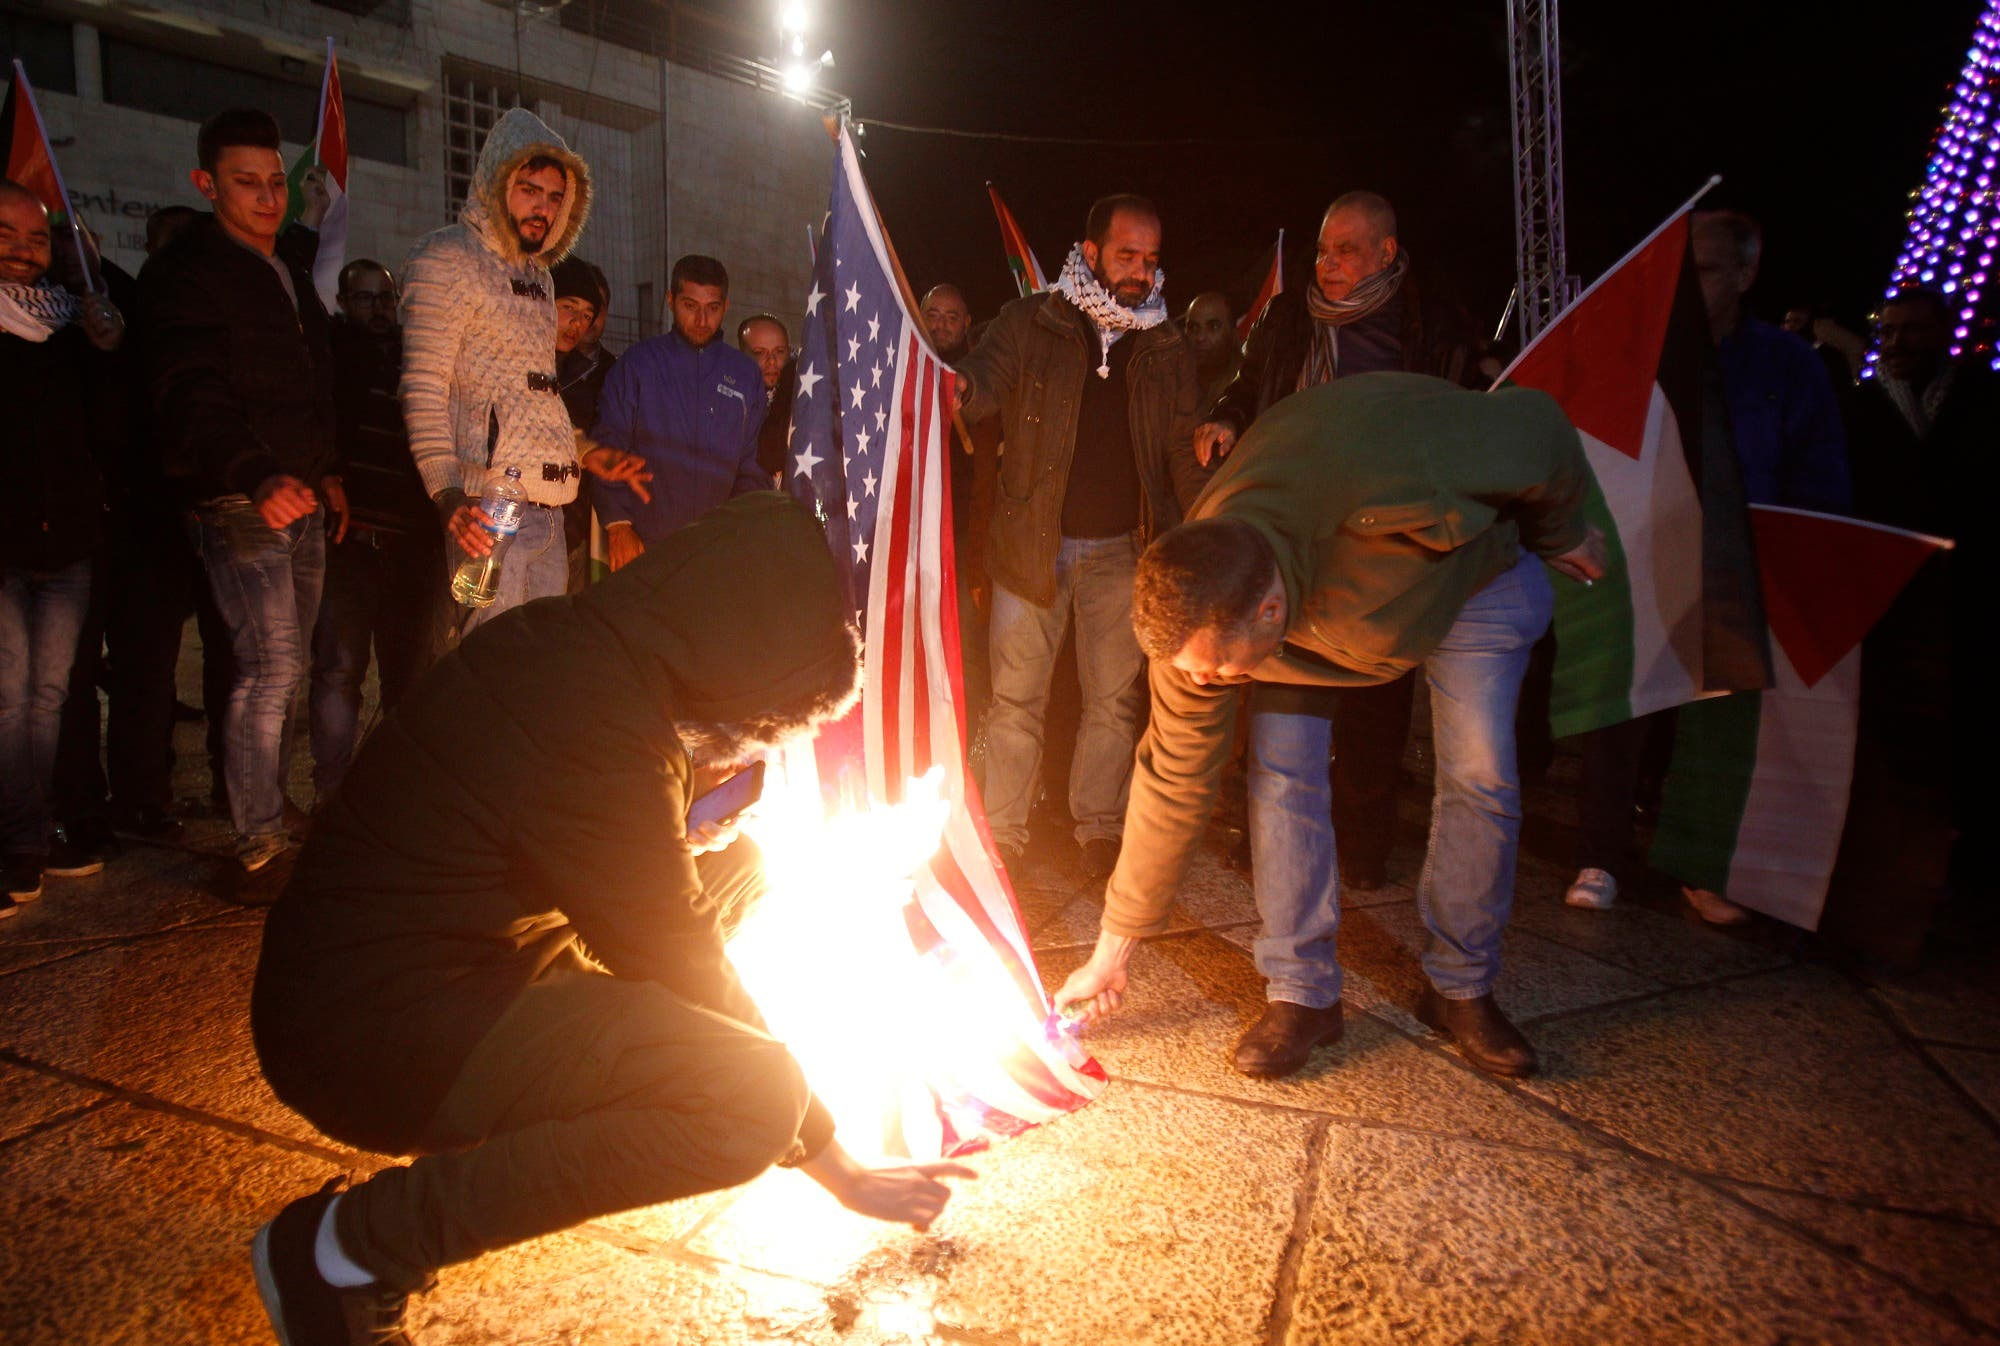 Palestinian demonstrators burn the US flag in Bethlehem's Manger Square in protest to the declaration of the US president declaring Jerusalem as Israel's capital on December 6, 2017. (AFP)